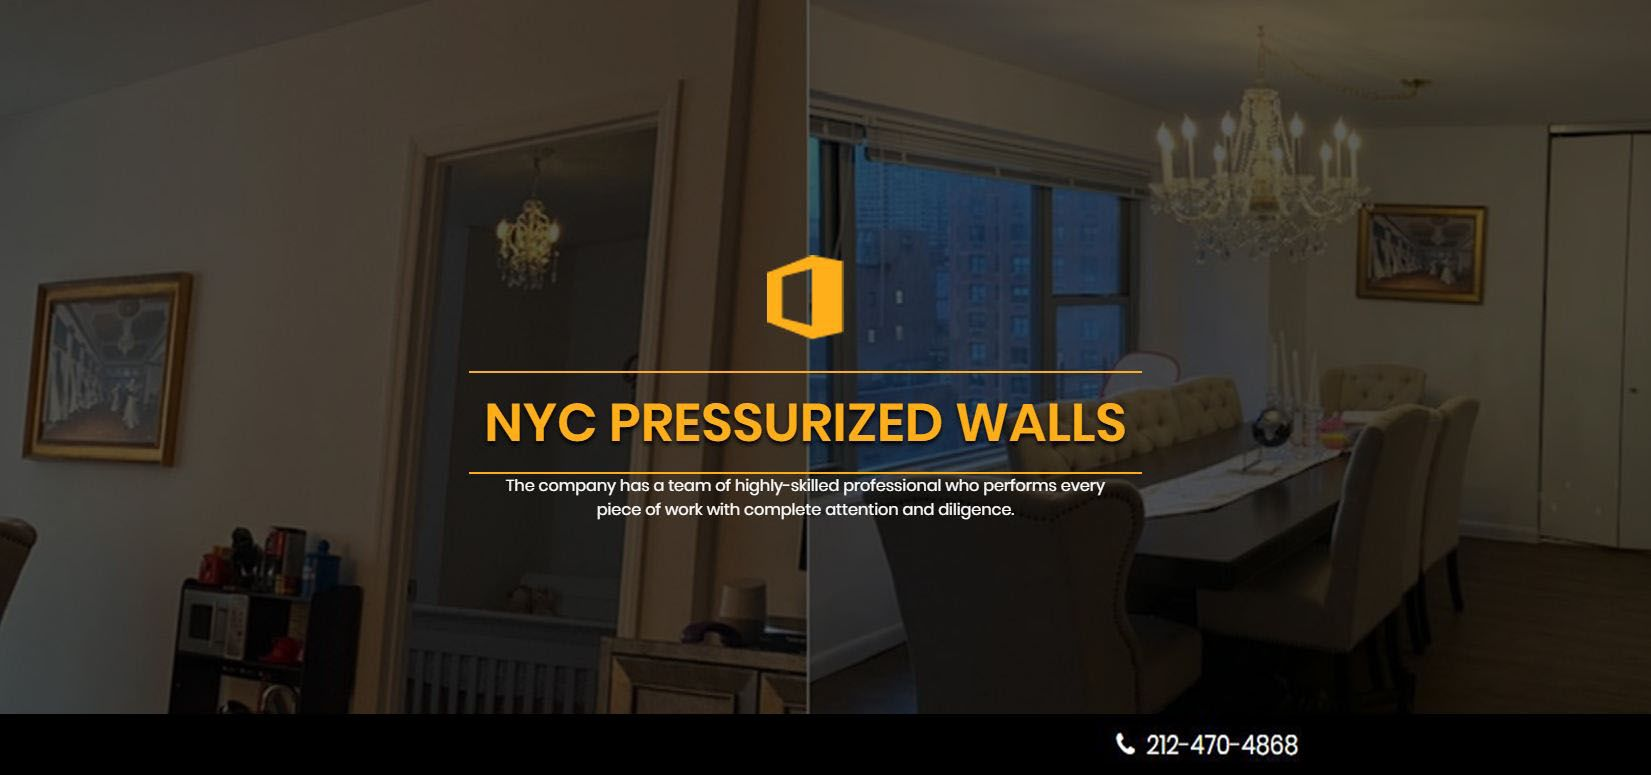 get instagram followers likes free esmeriley4uin over blog com Nyc Pressurized Walls 1daywall Certified Used Cars Nyc Wall Systems